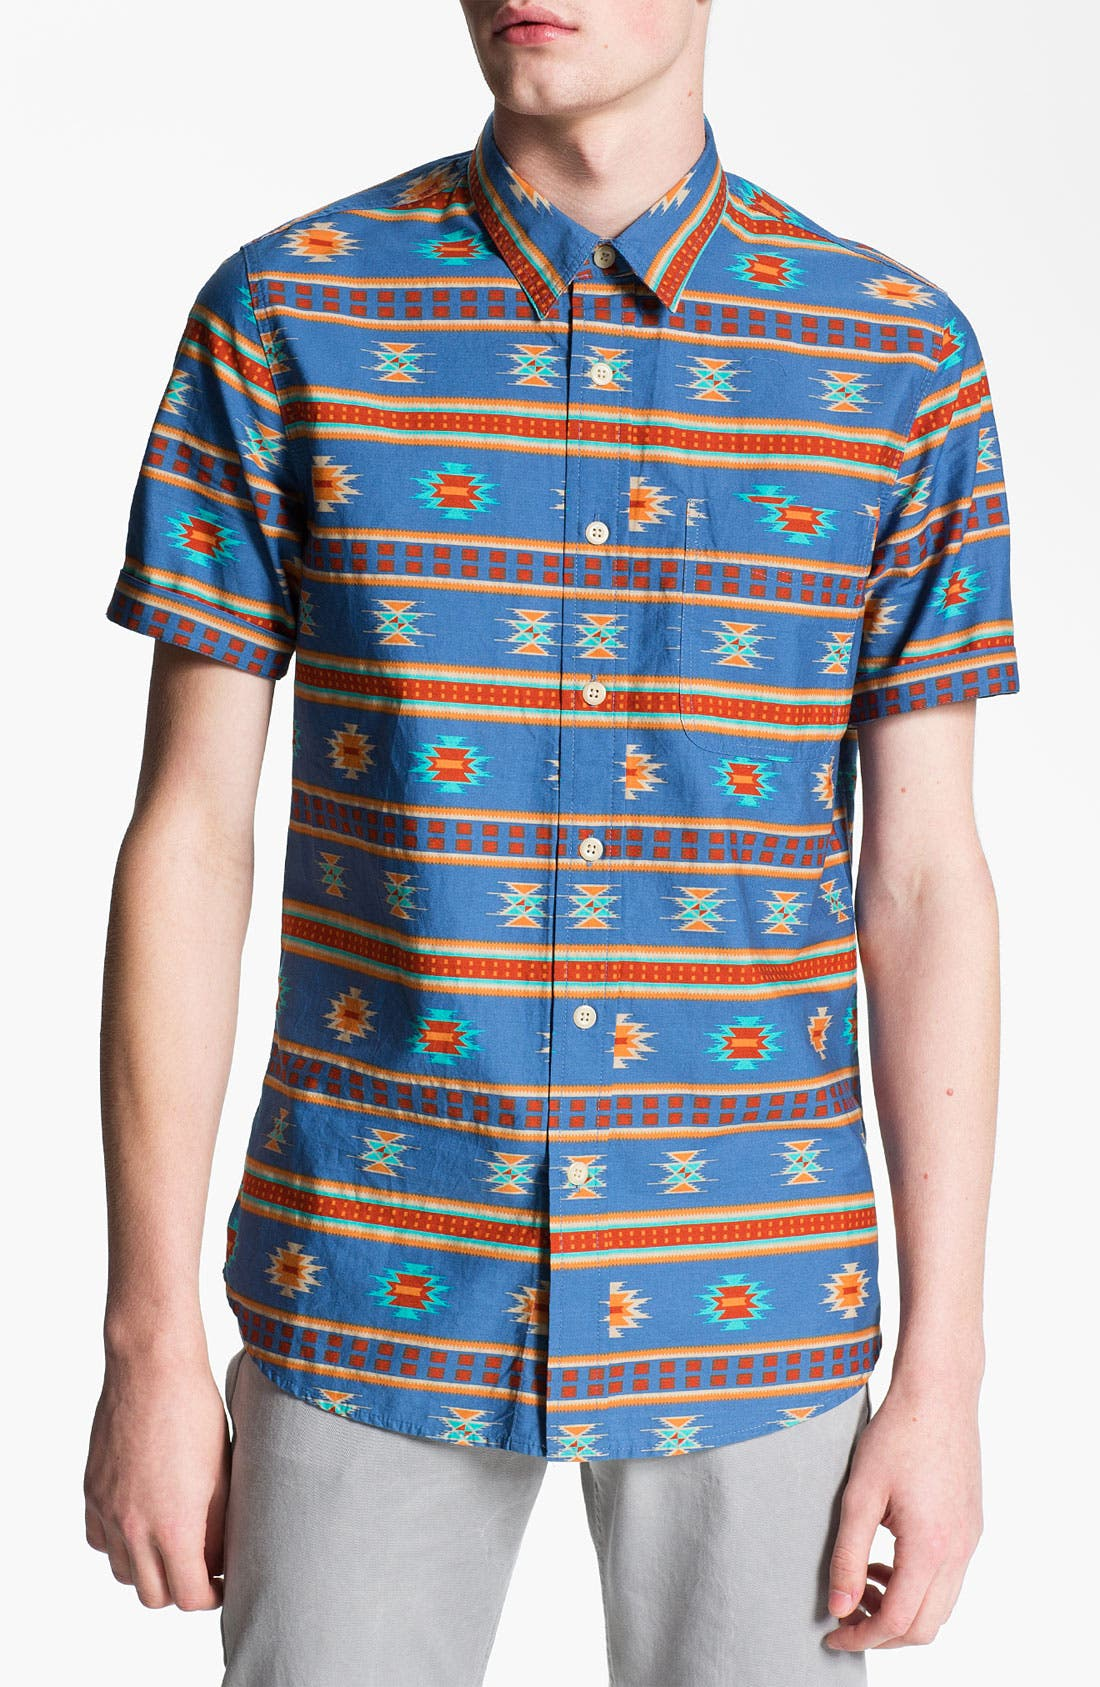 Alternate Image 1 Selected - Topman Short Sleeve Print Shirt